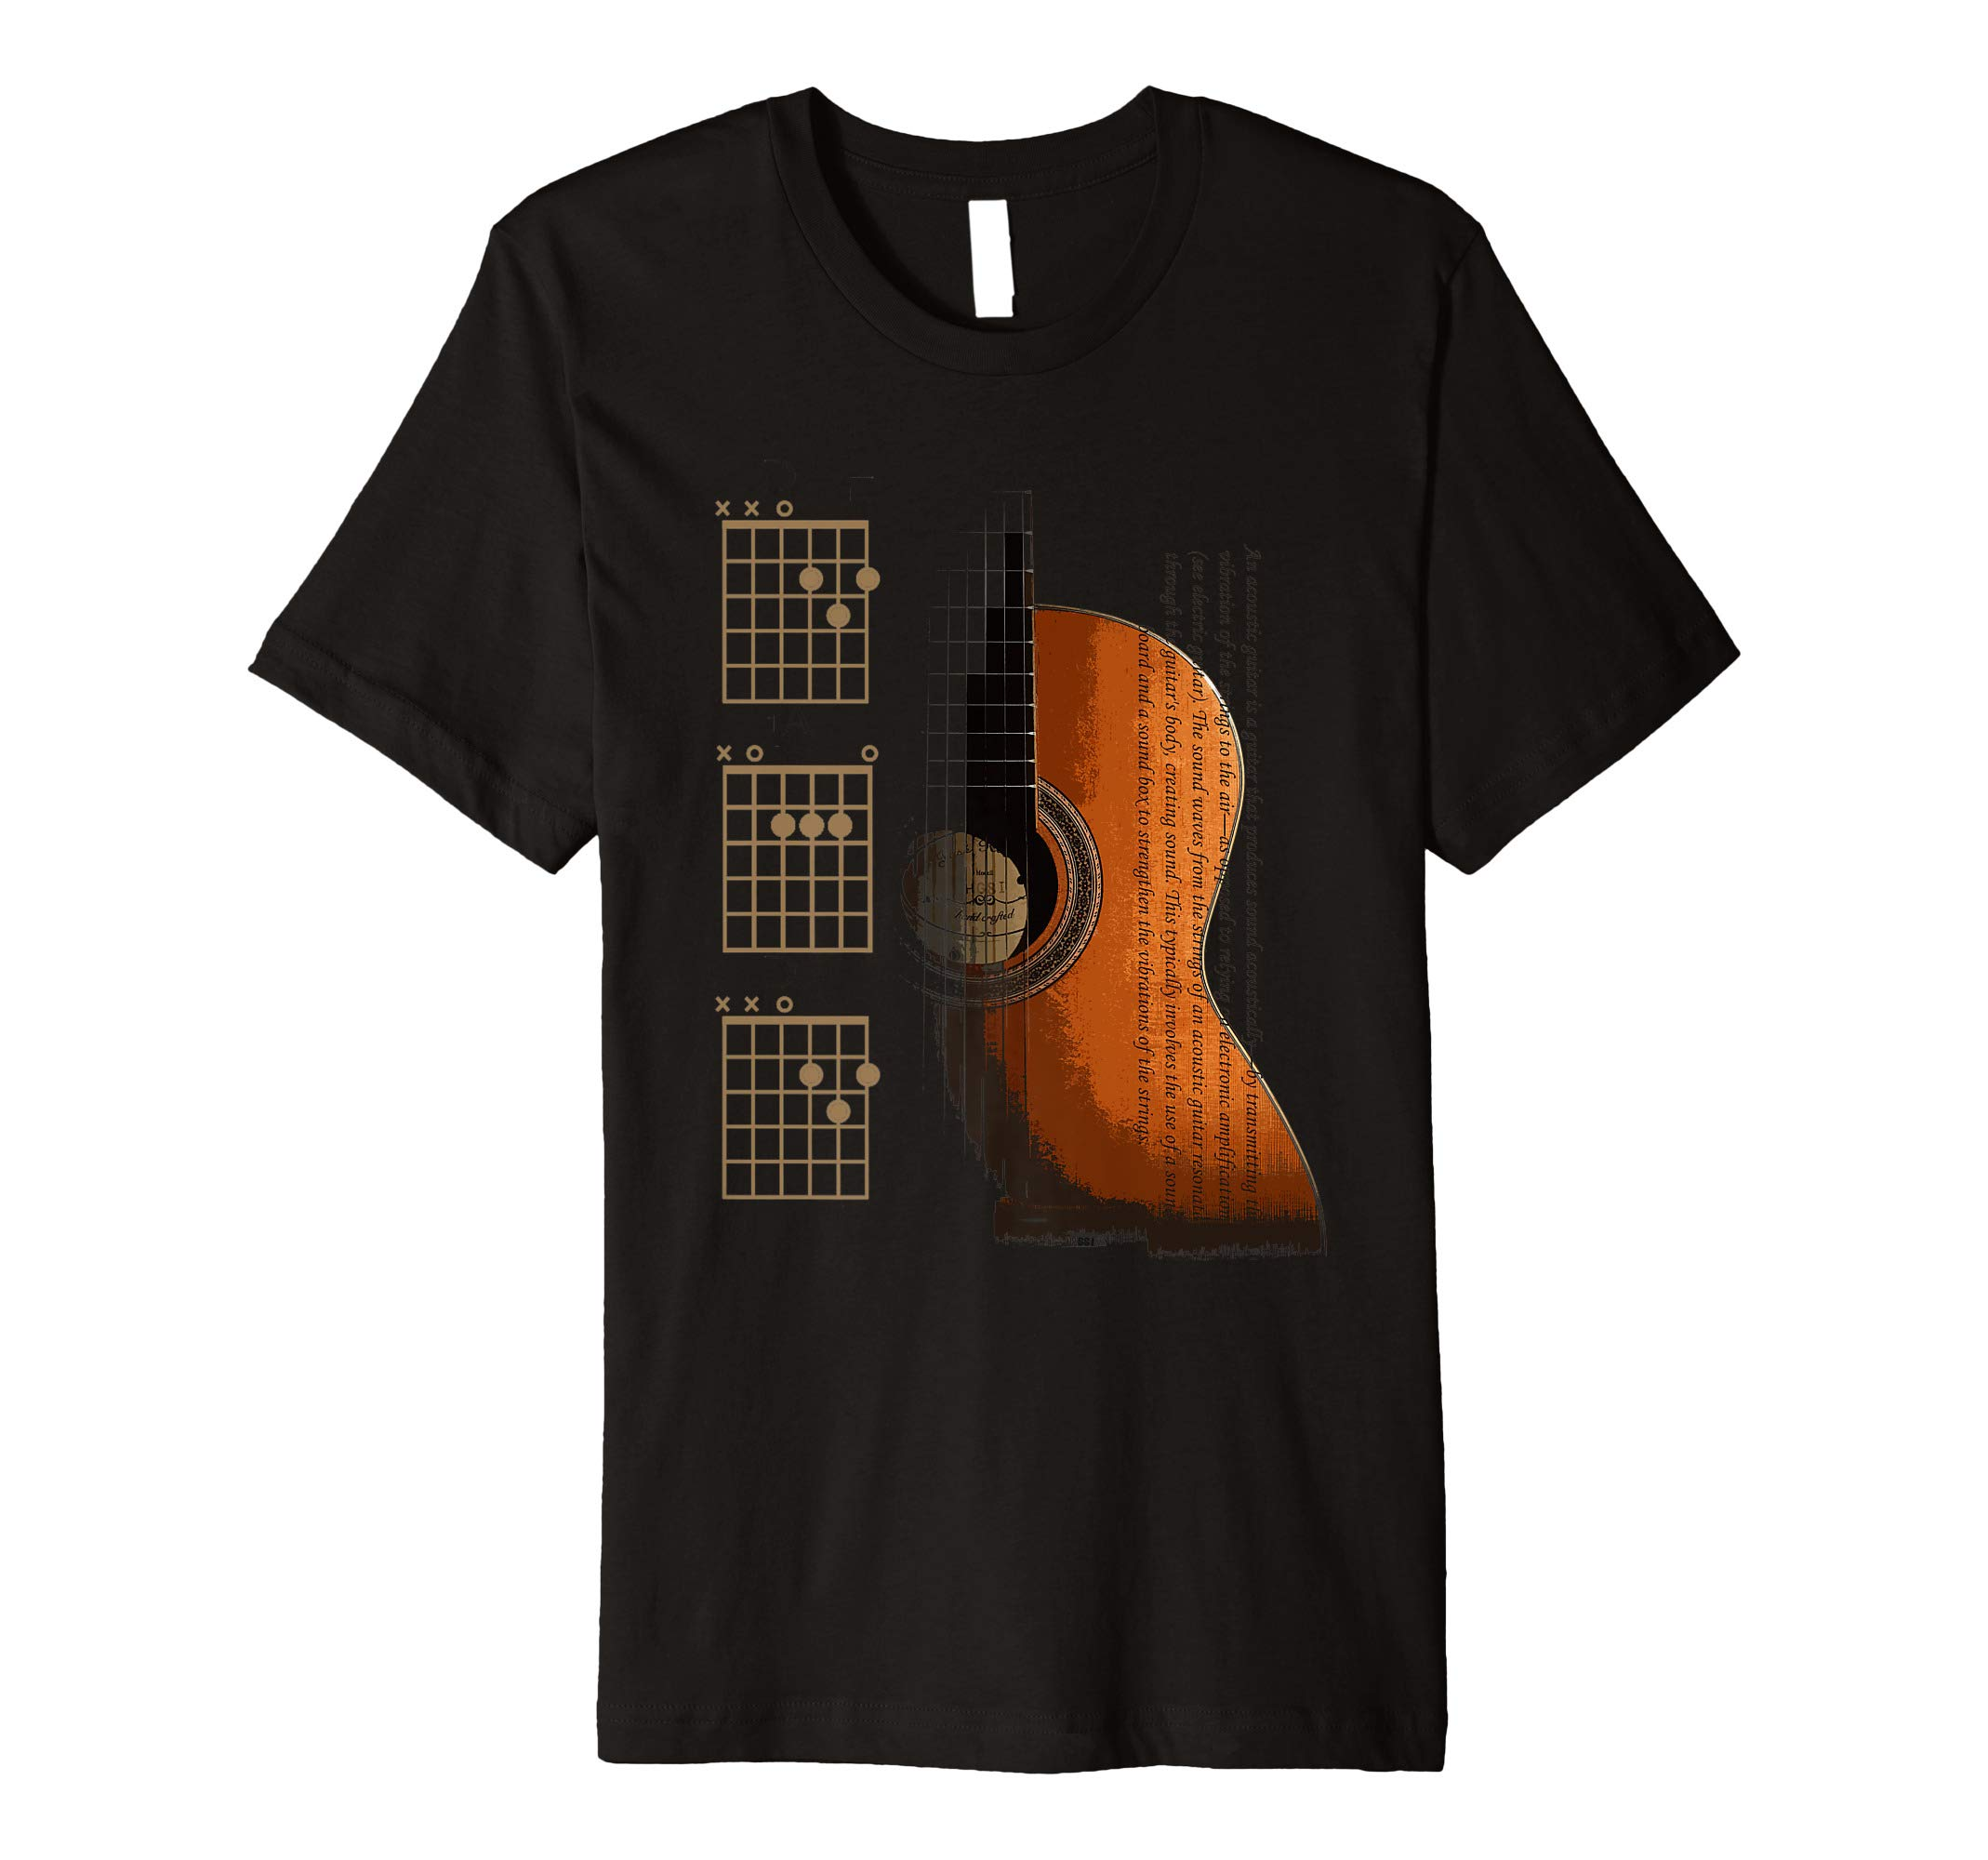 DAD Chords Acoustic Guitar For The Guitarist Premium T-Shirt by The Acoustic Guitarist